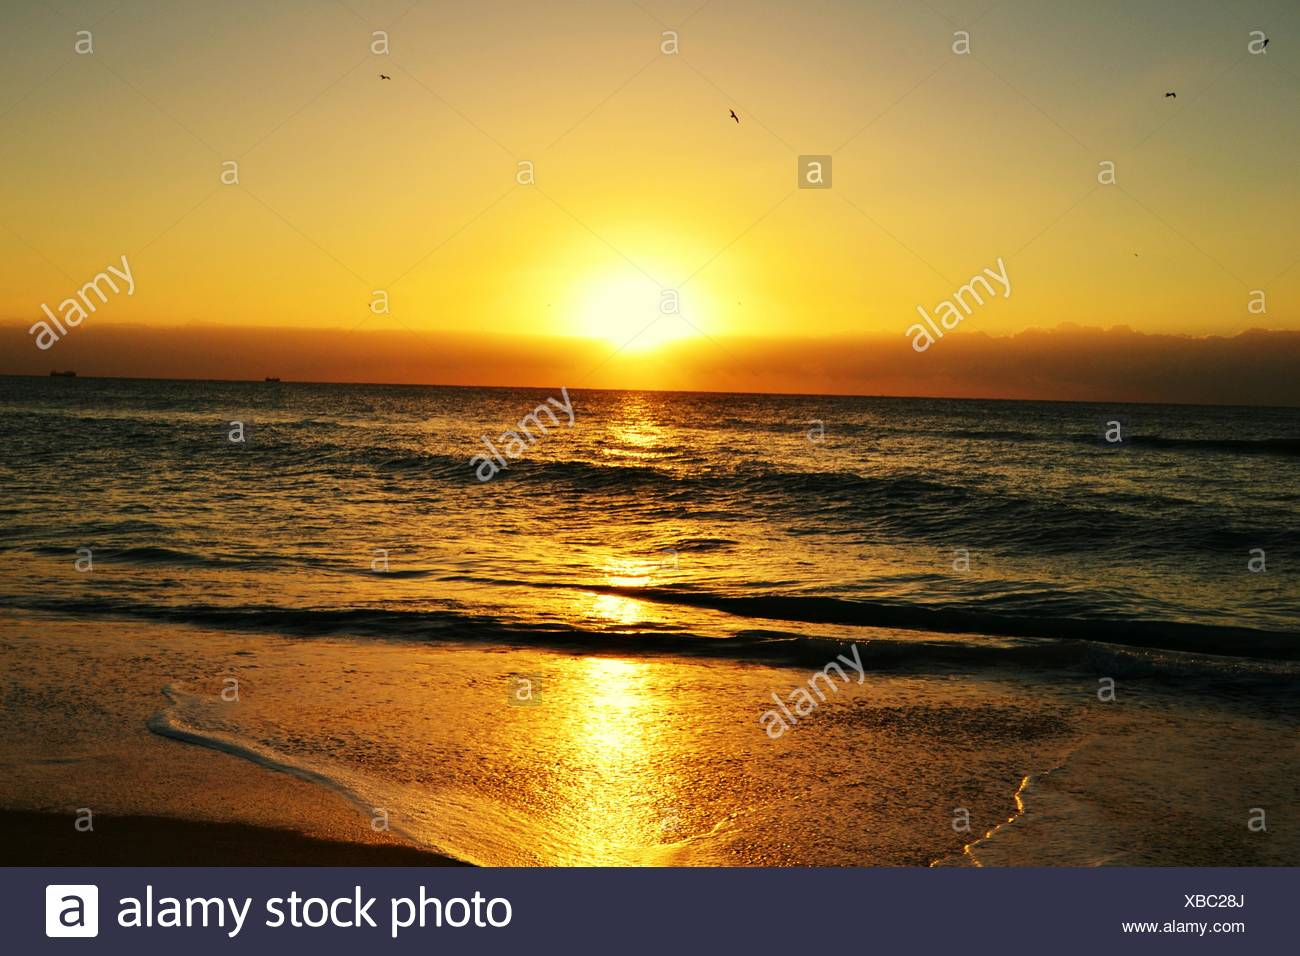 Scenic View Of Sunrise At Beach - Stock Image